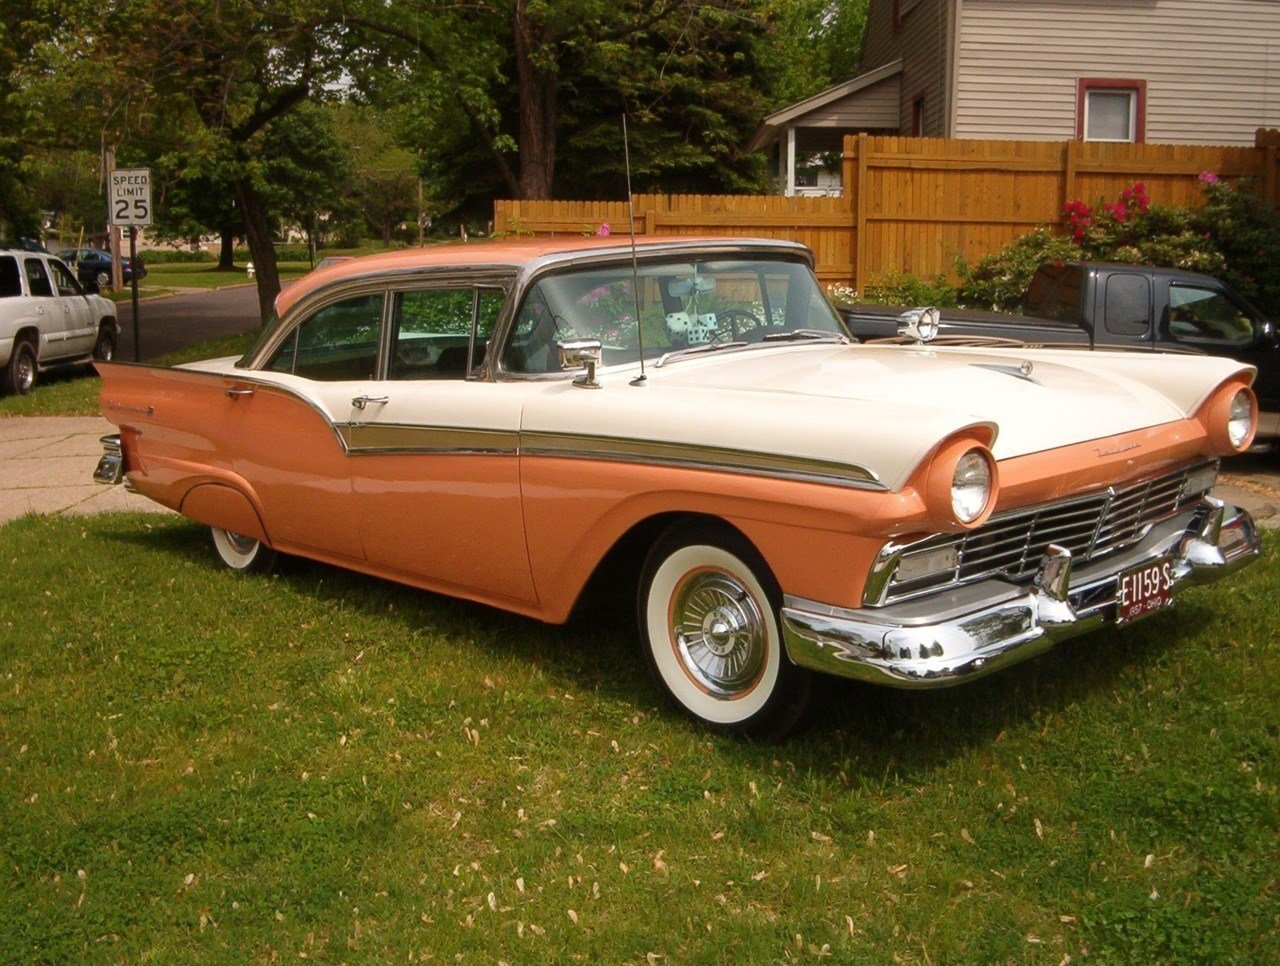 Latest Car Photos 1957 Ford Fairlane 500 Sedan Free Download